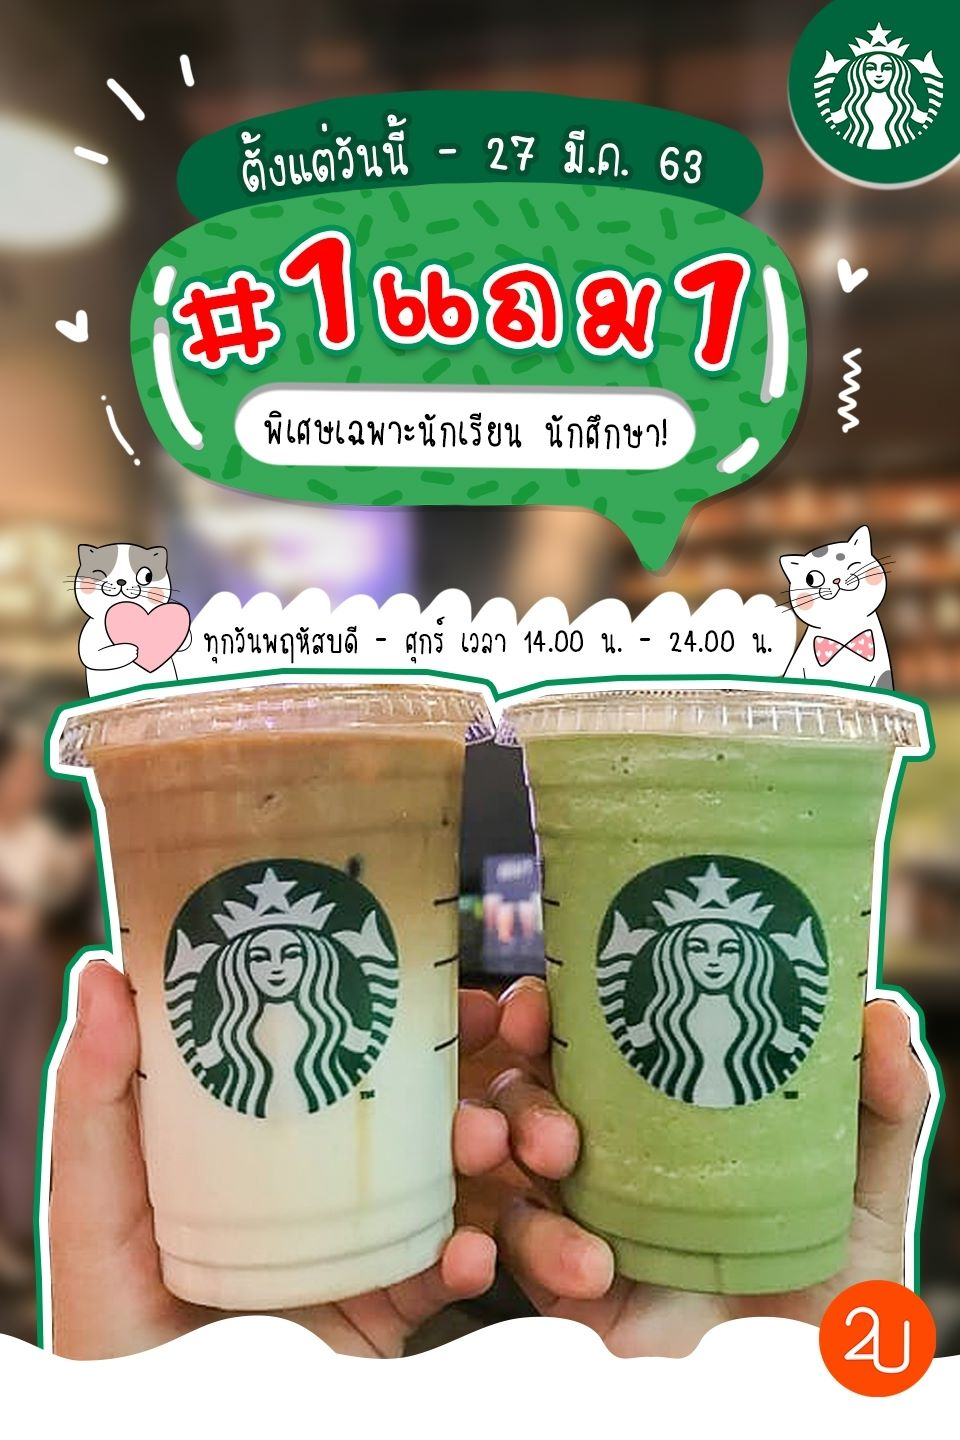 Promotion Starbucks Buy 1 get free 1 only student